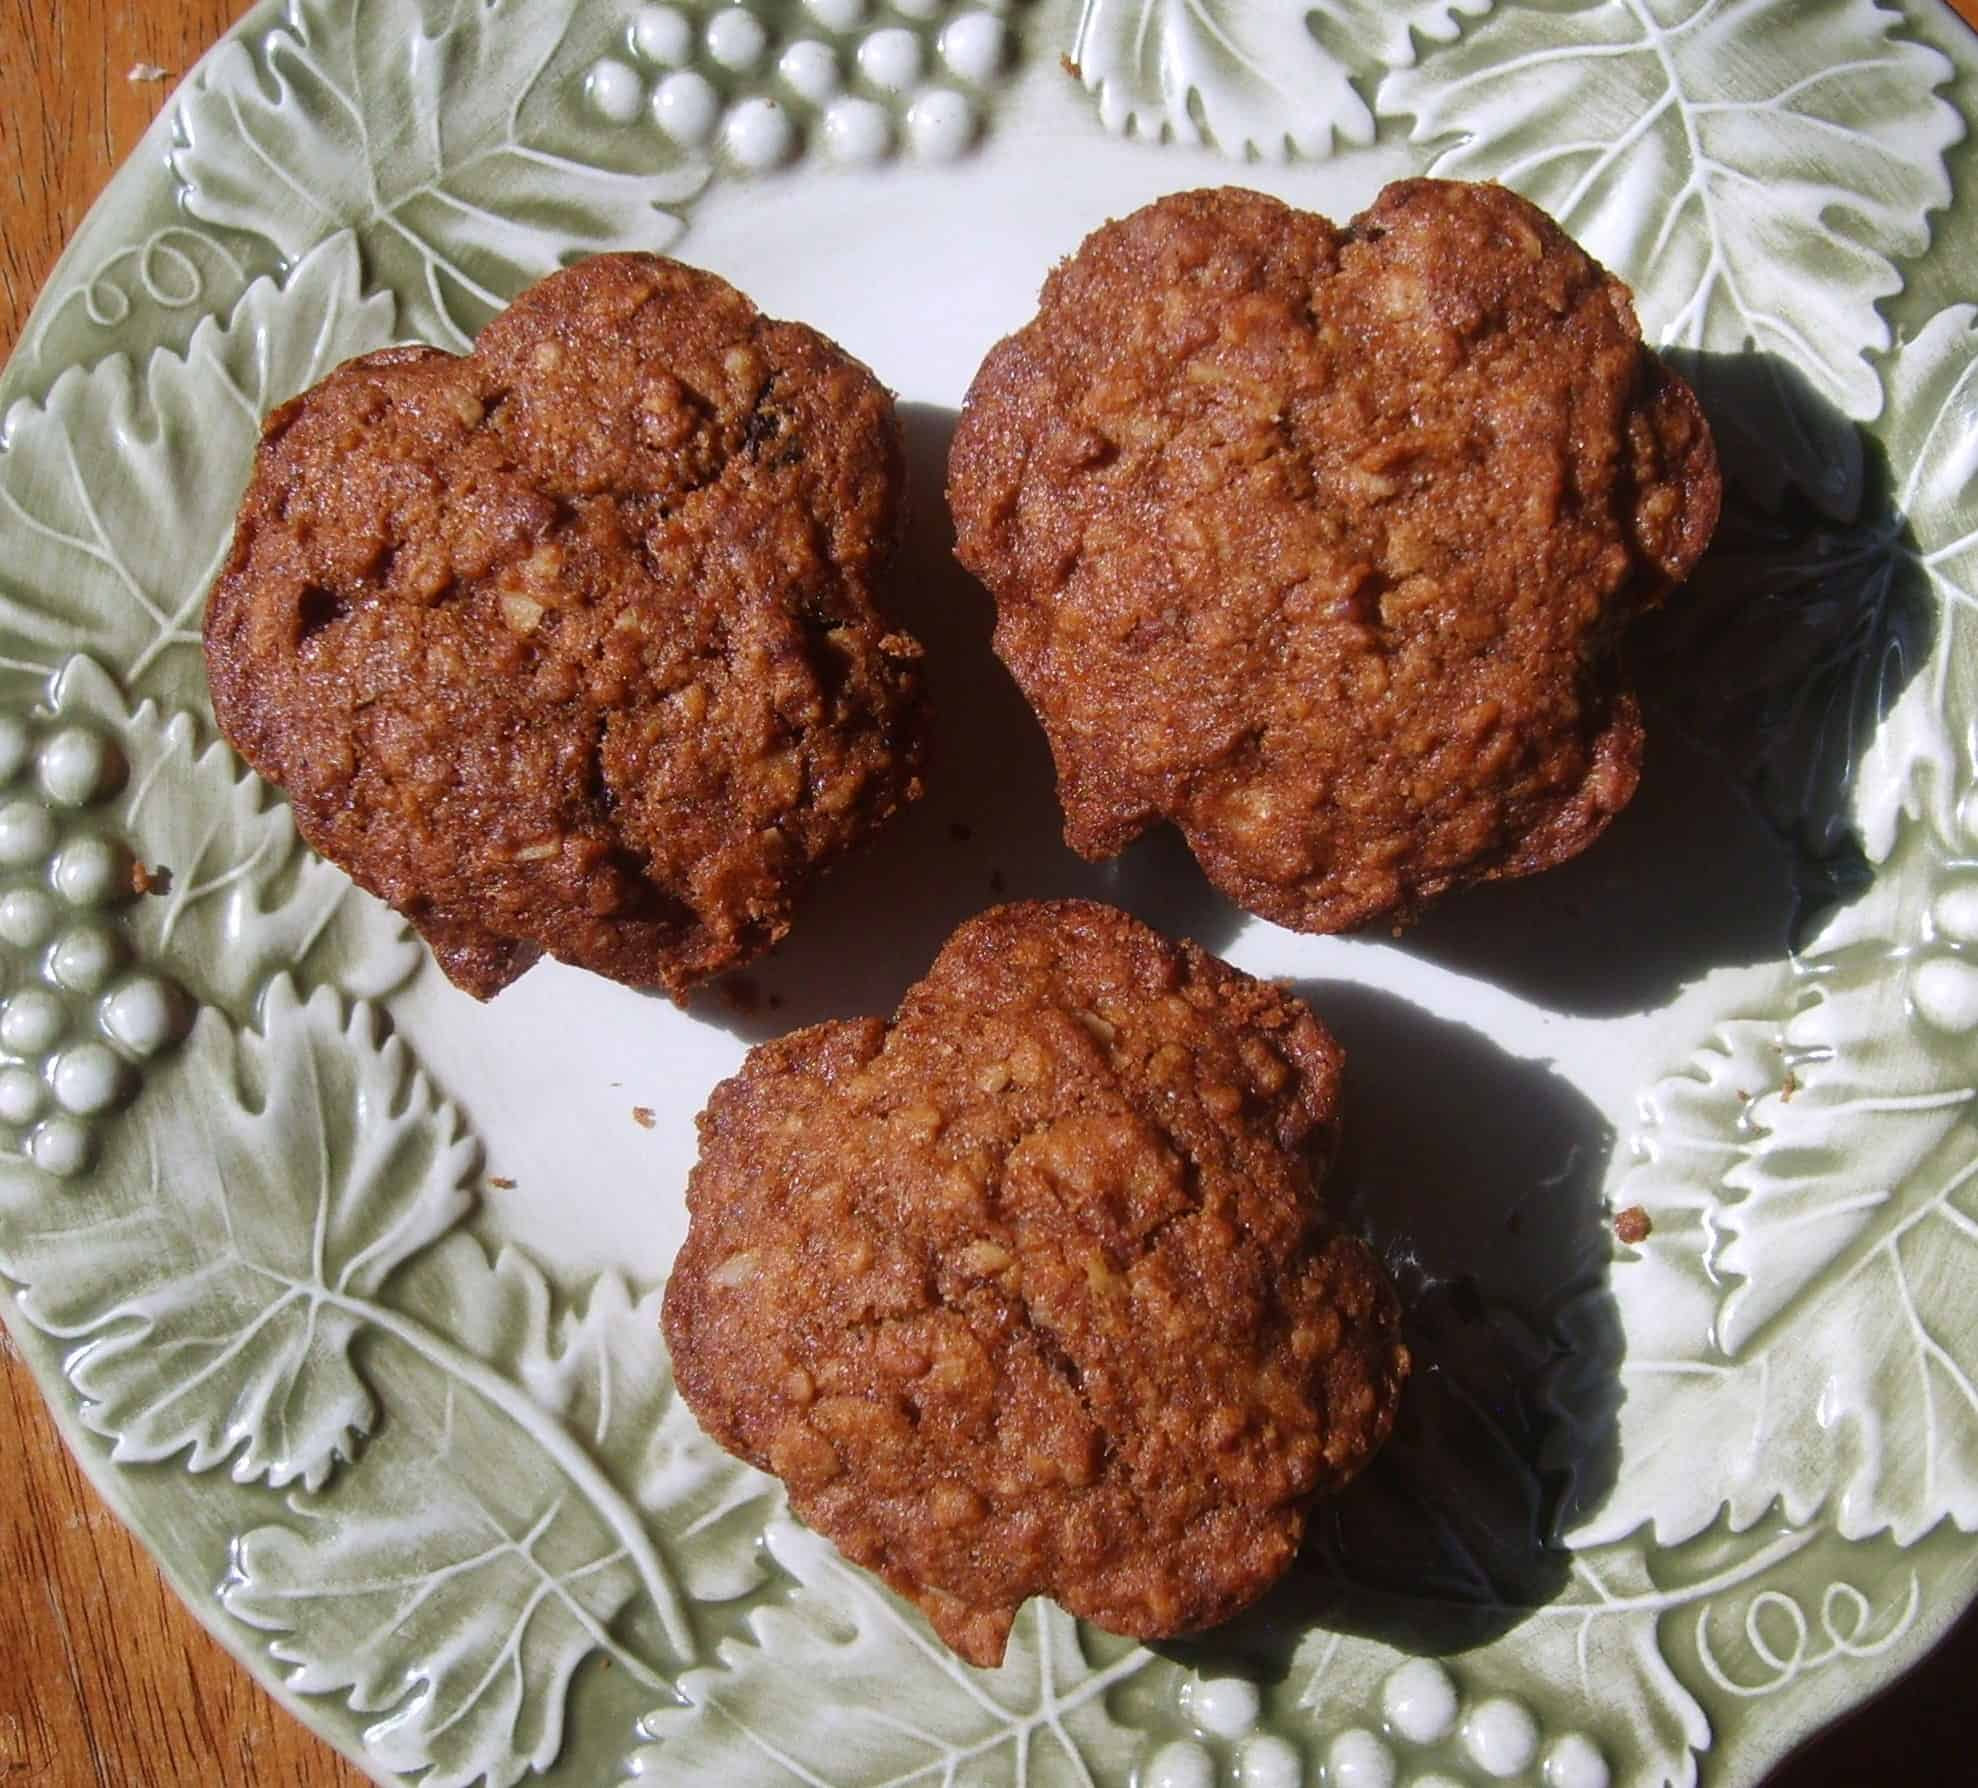 Three muffins in shamrock shape on a plate with green border